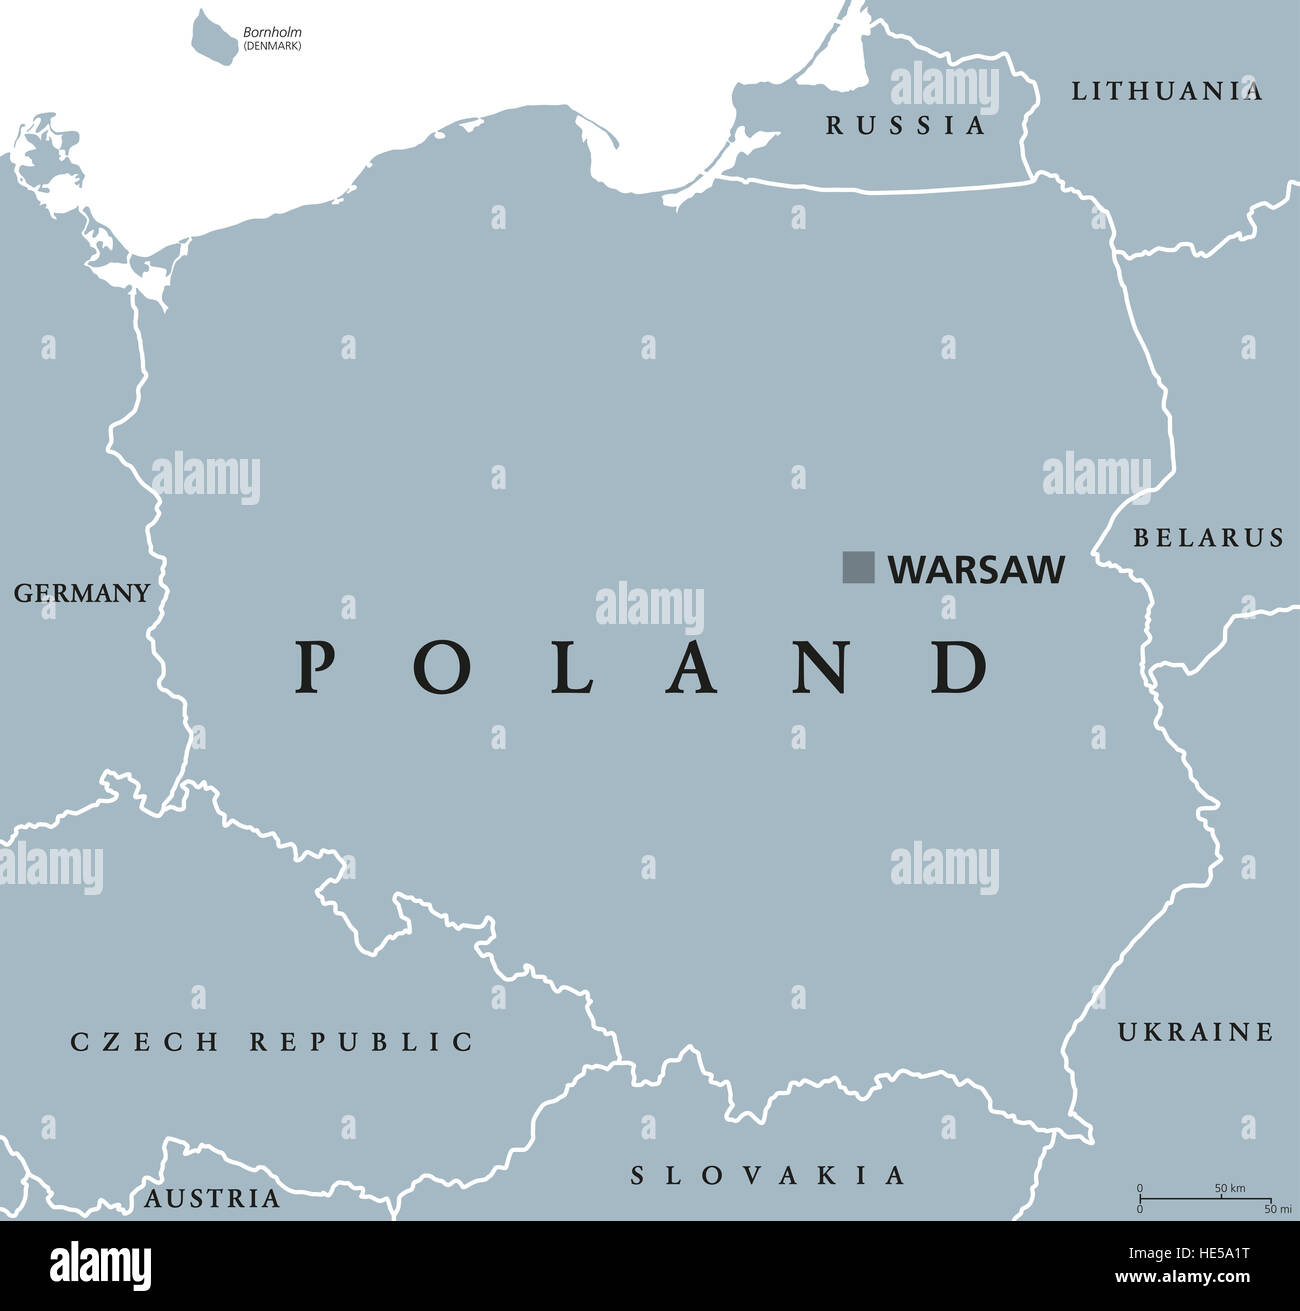 Poland Country Map Stock Photos Poland Country Map Stock Images - Germany map neighbouring countries